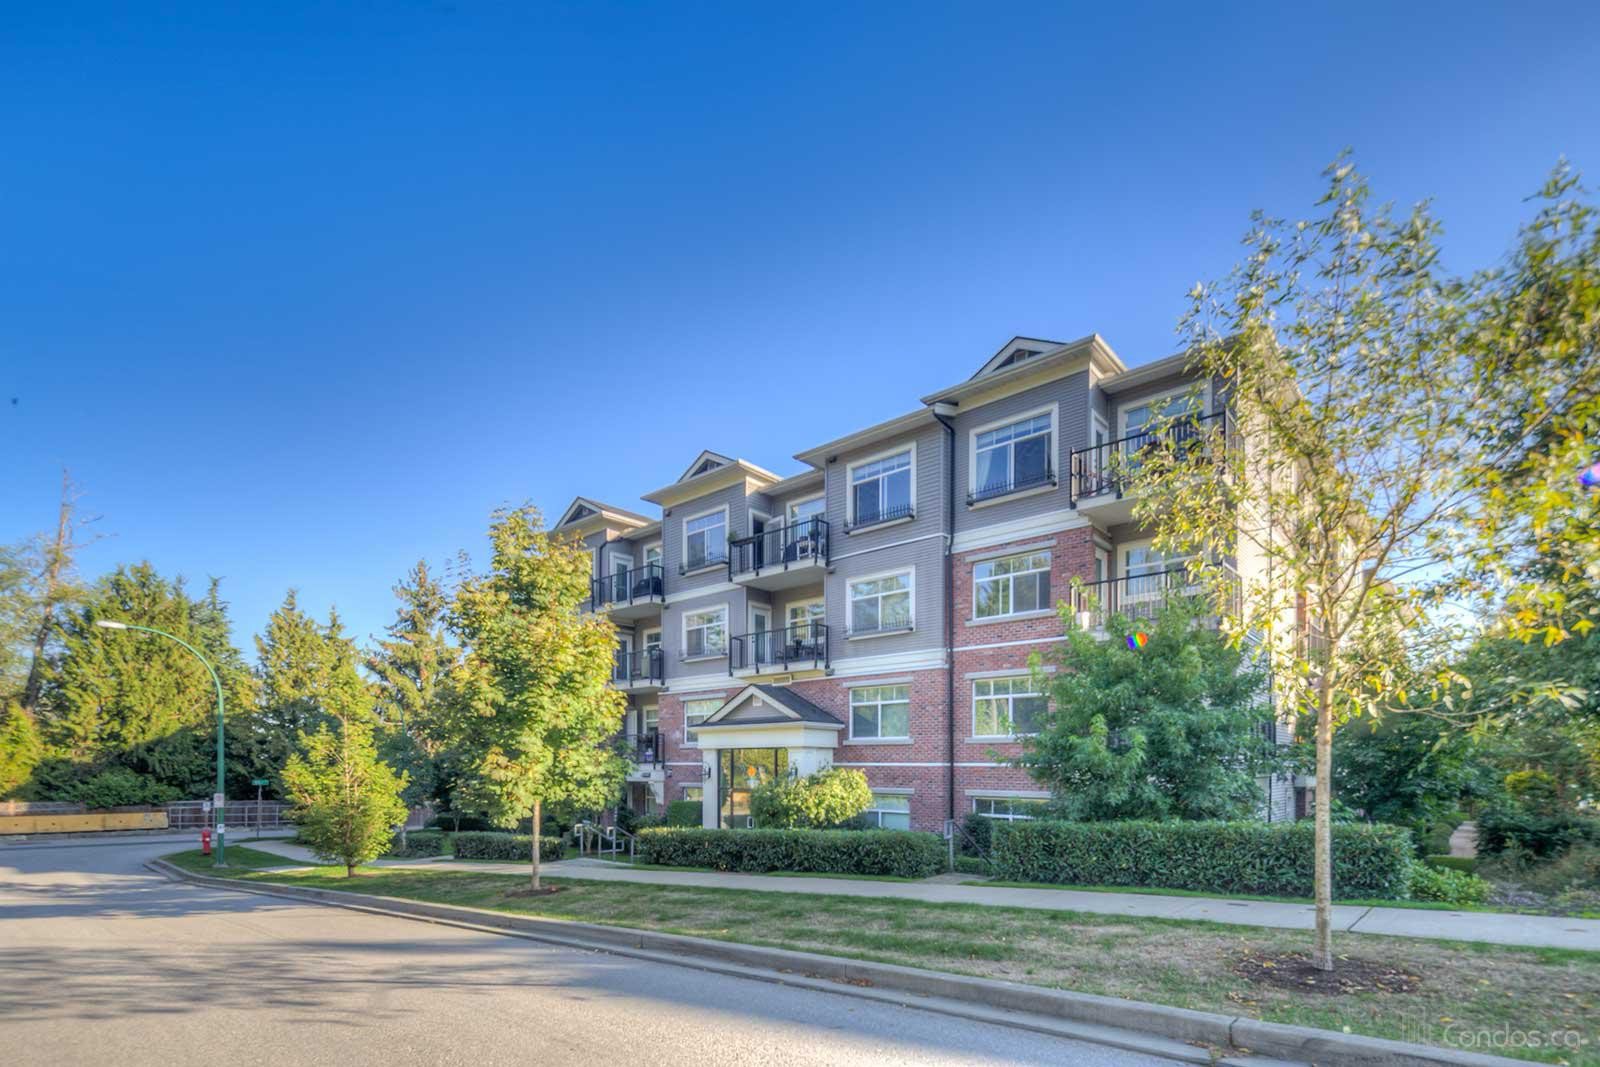 Willow Grand at 19533 64 Ave, Surrey 0